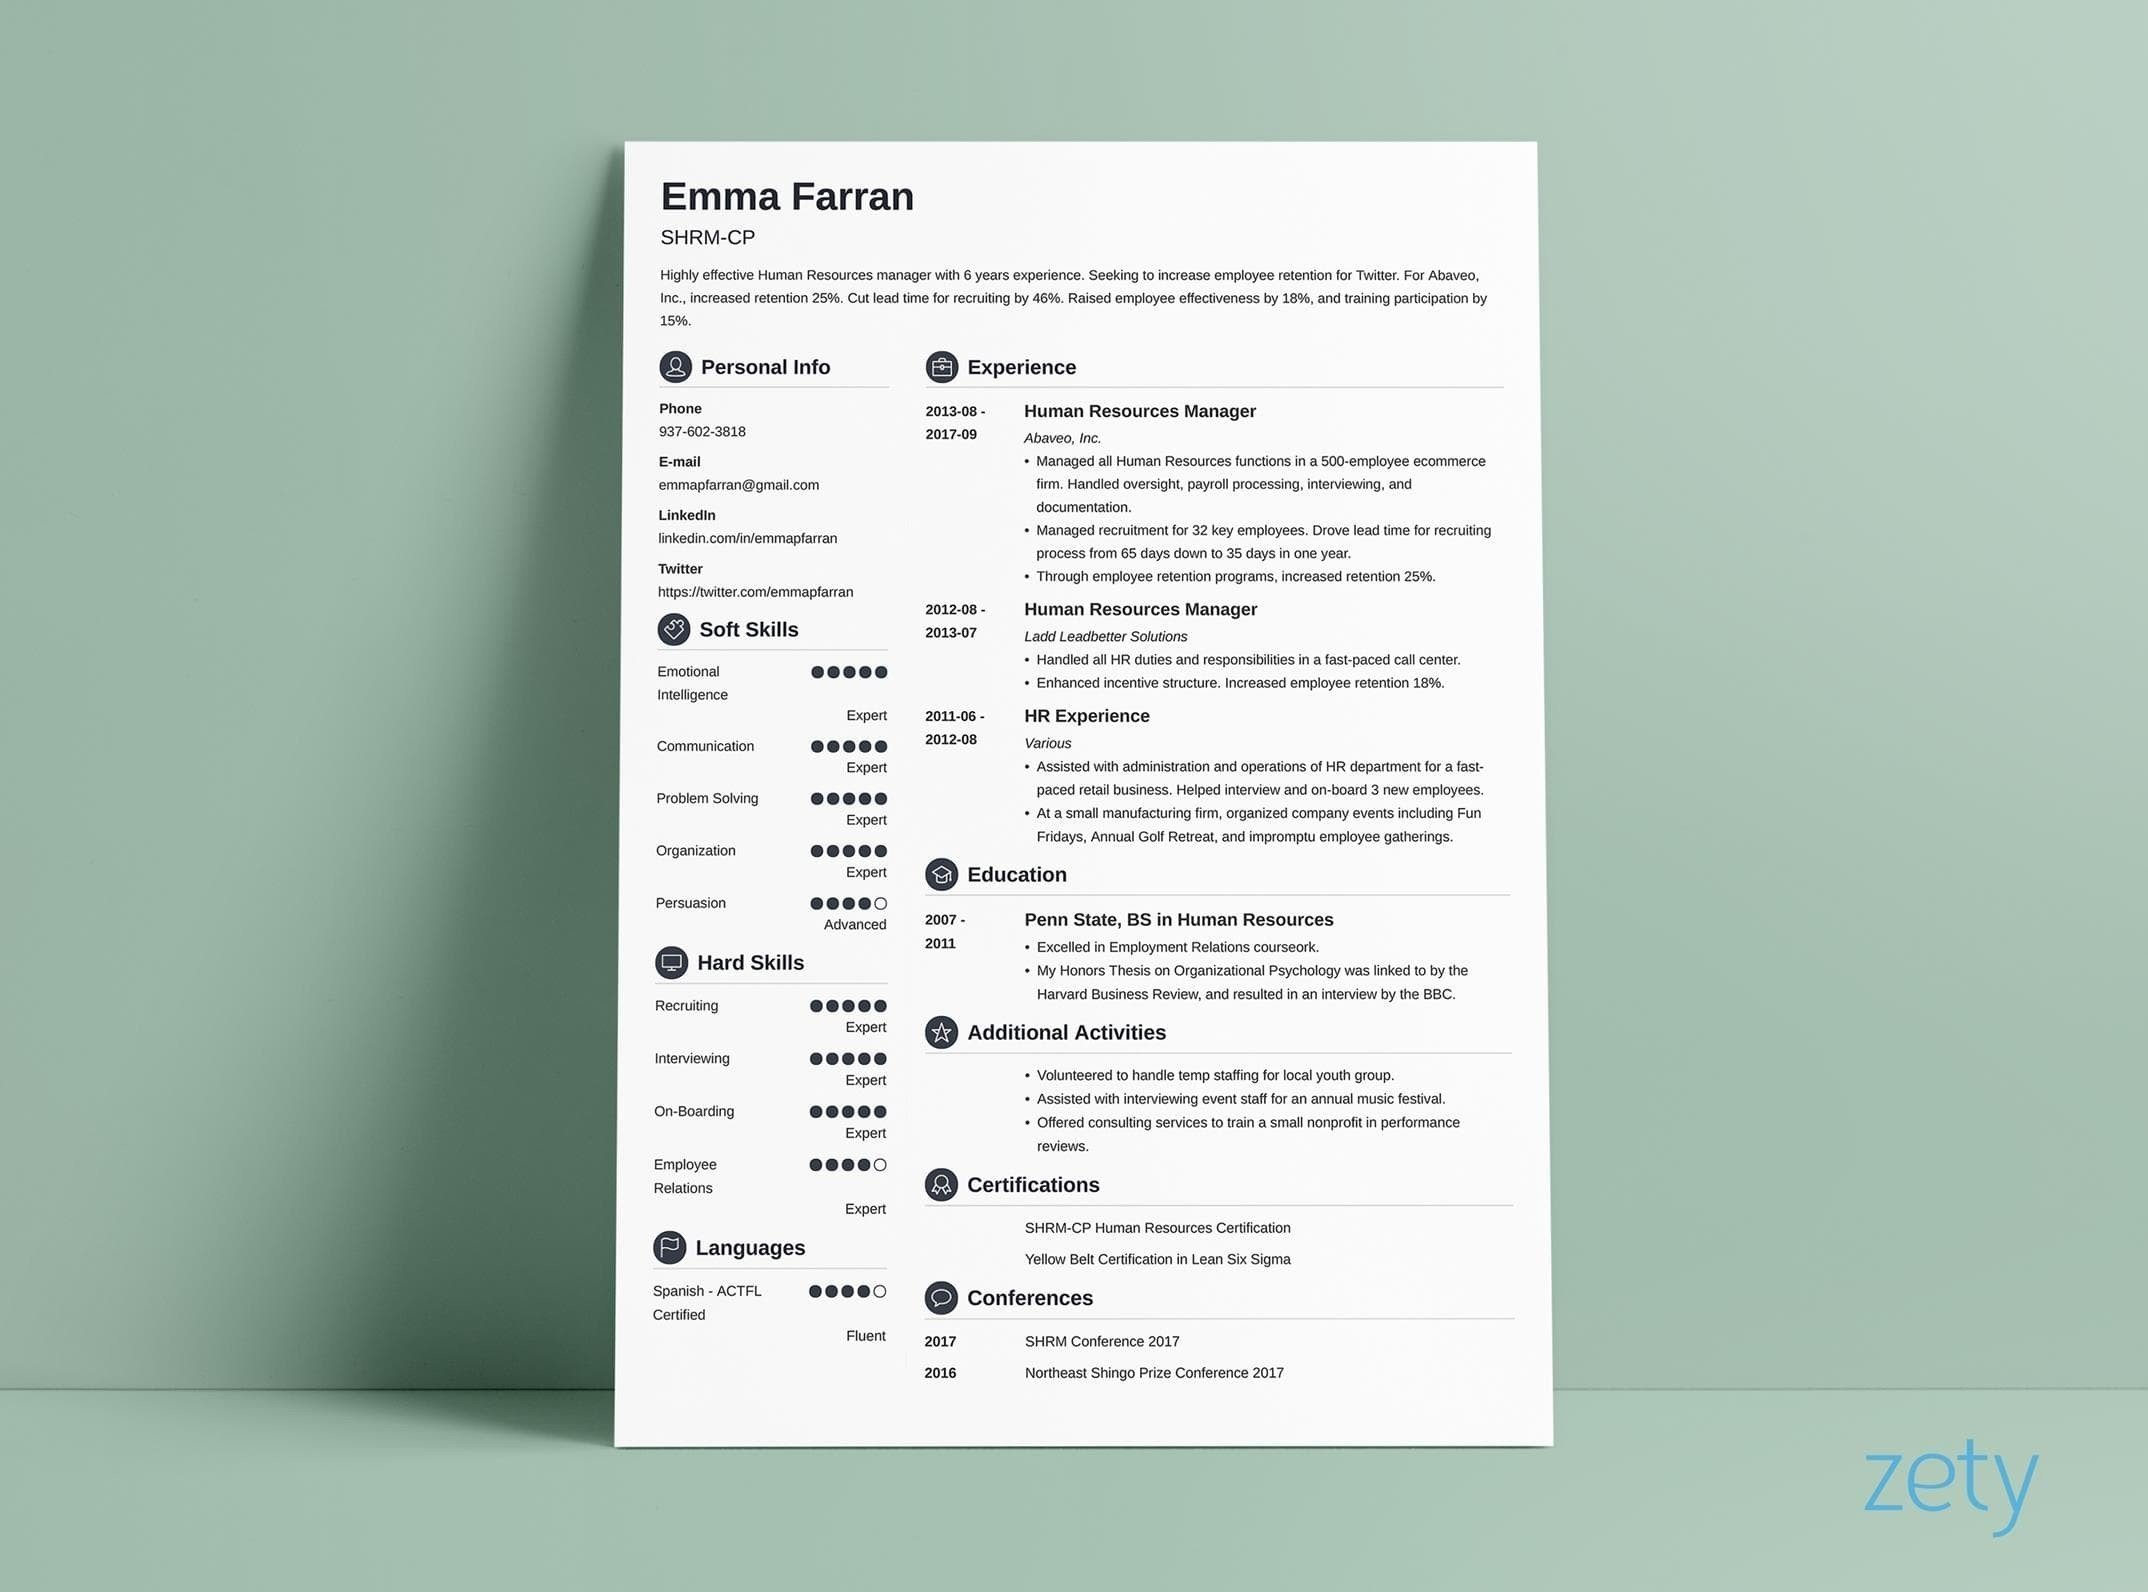 curriculum vitae cv format examples tips structure of resume writing vs professional Resume Structure Of Resume Writing